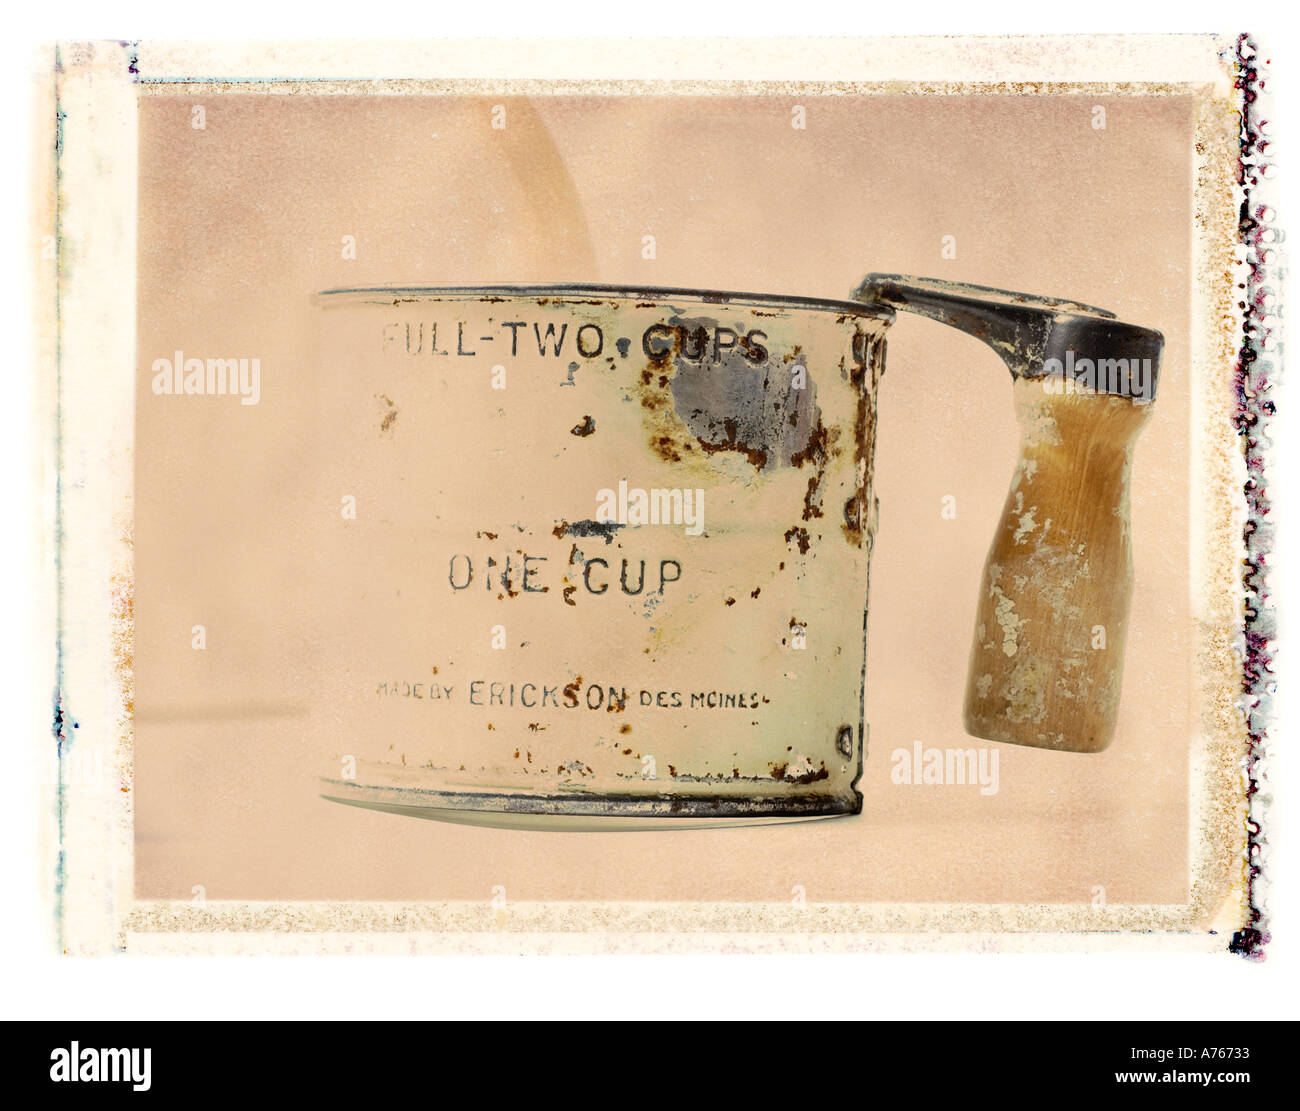 flour sifter - Stock Image